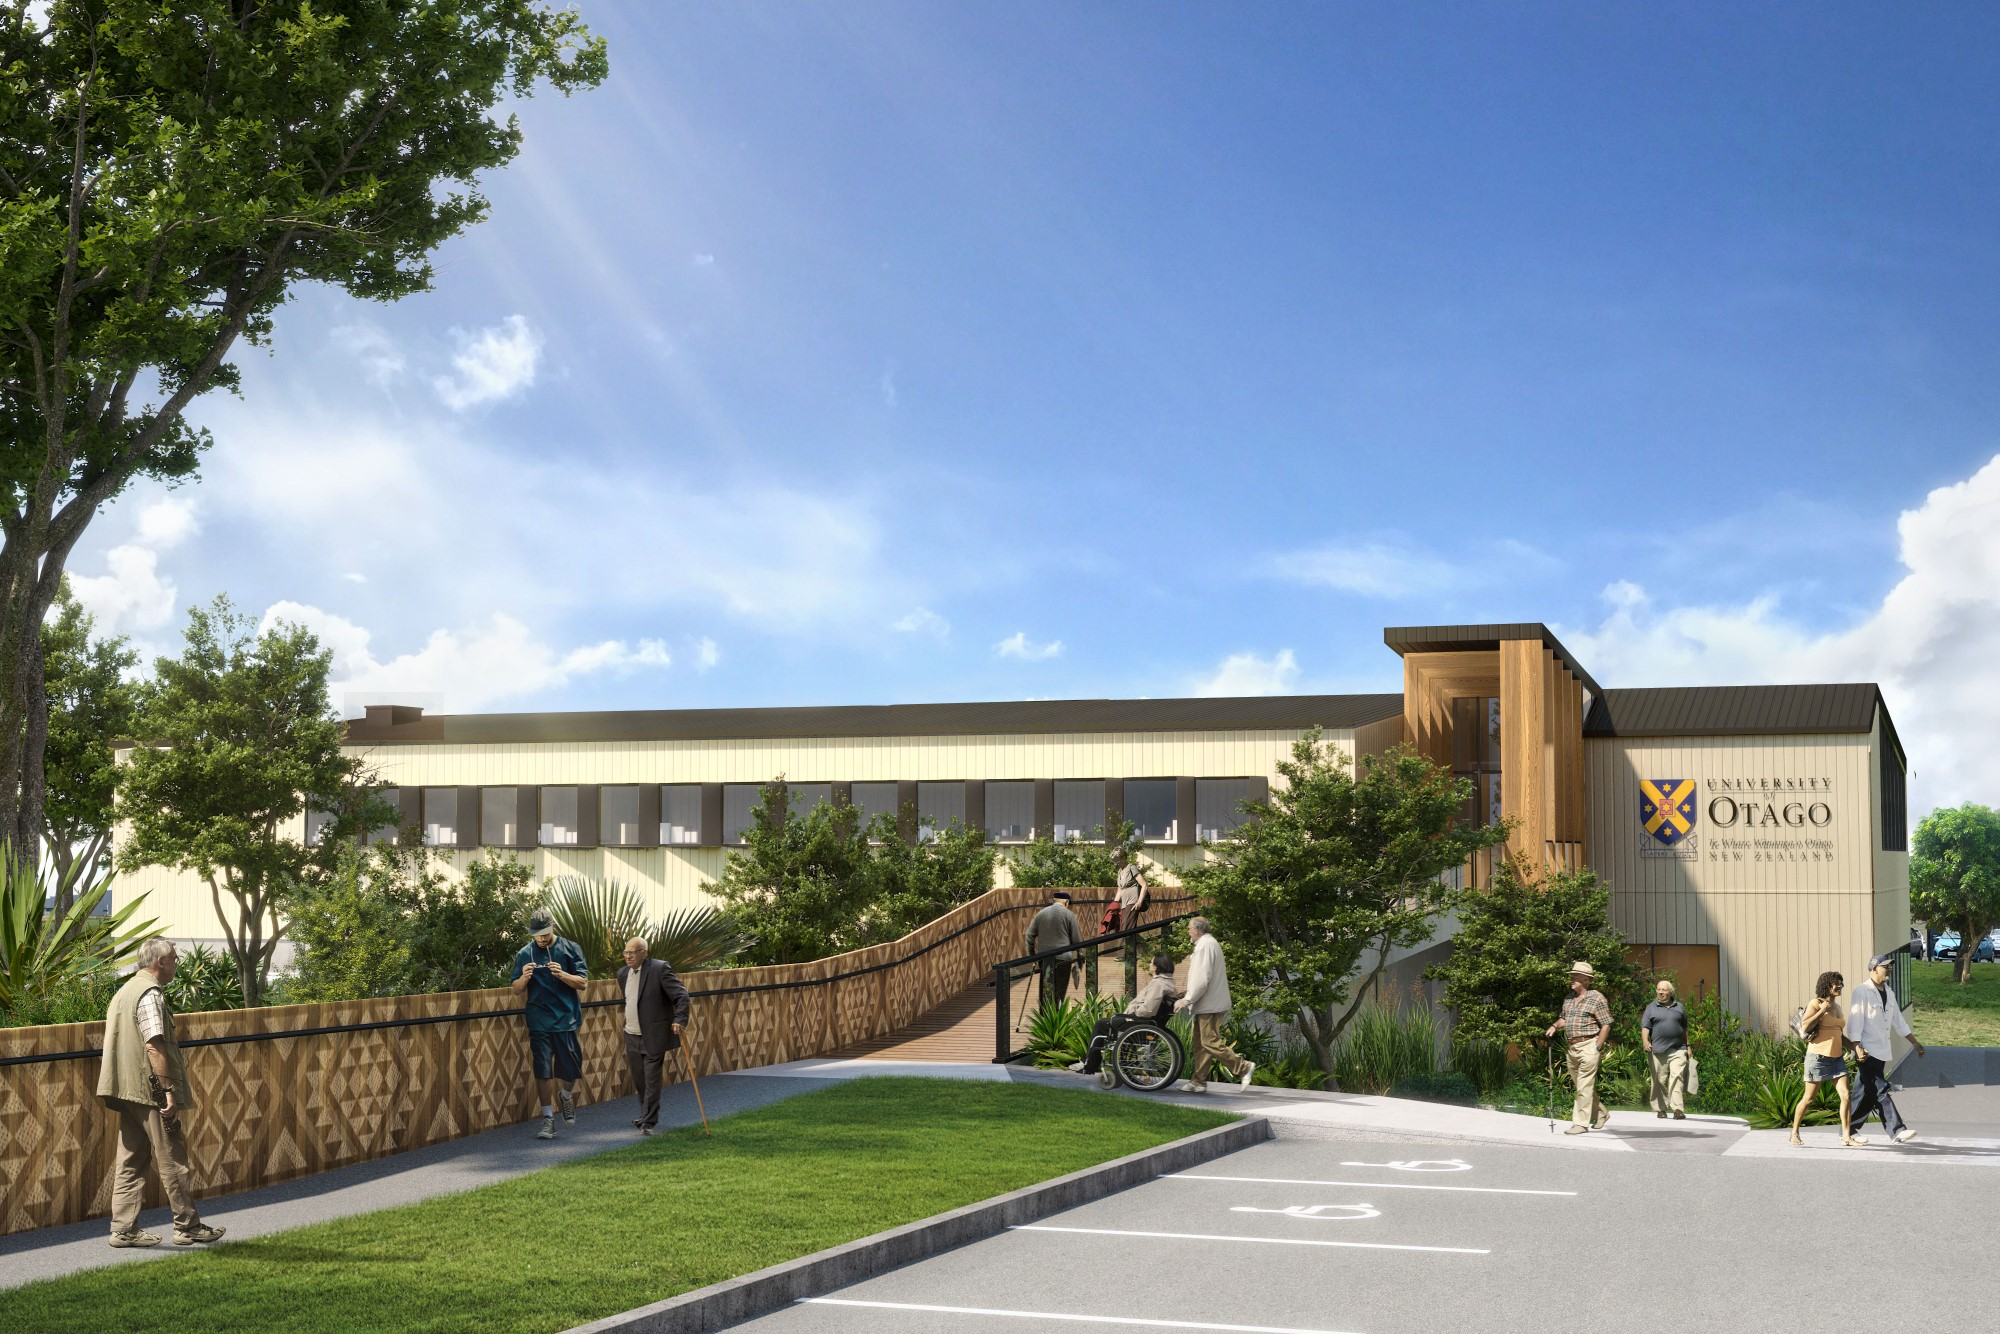 The University of Otago's $28.2 million two-storey facility in South Auckland will have 32...